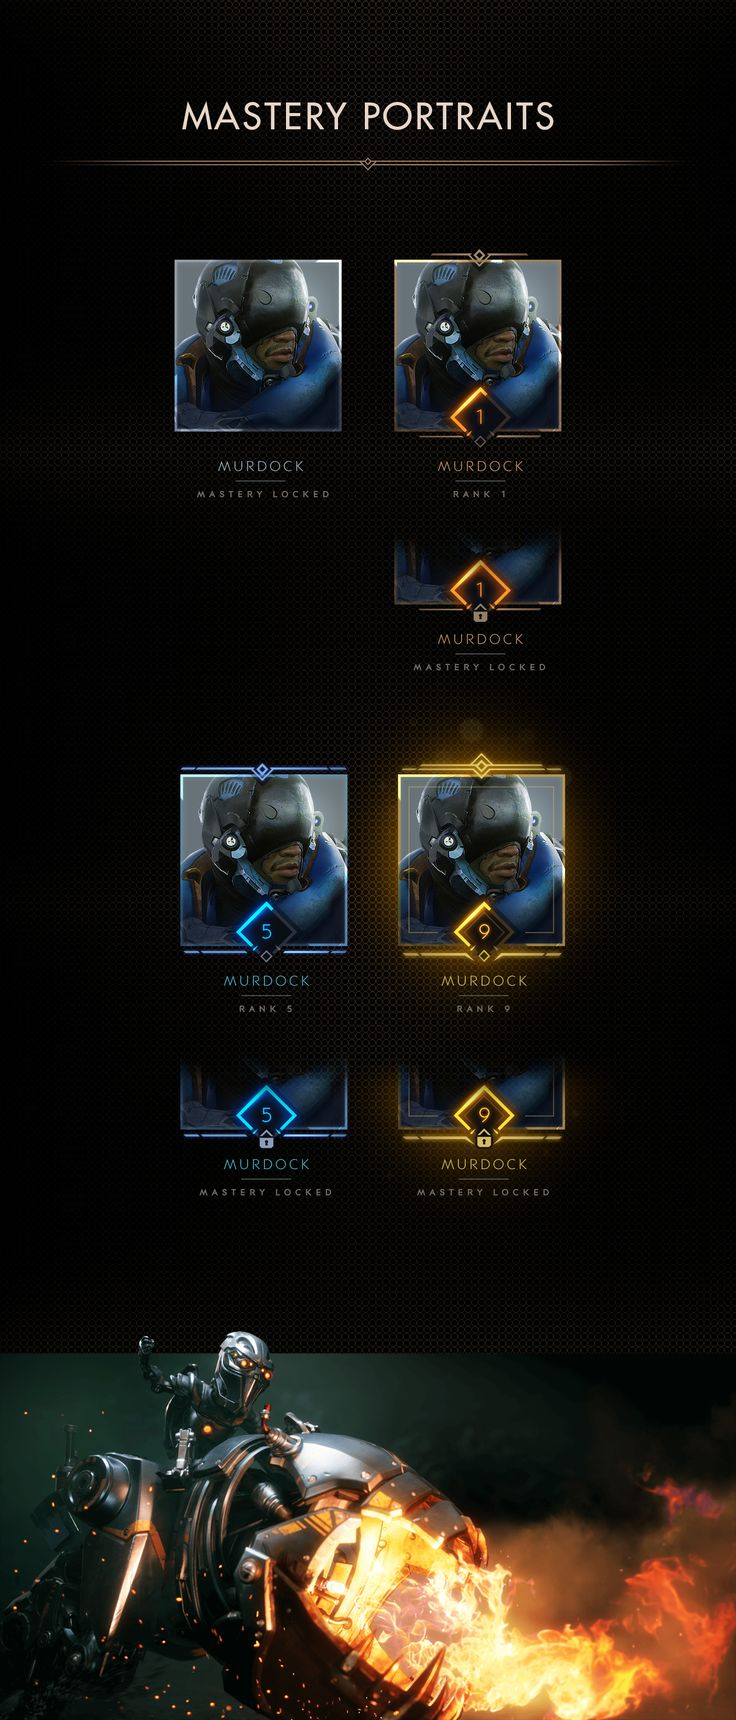 With the new Paragon patch V42, The New Dawn, BEHOLDER was tasked with designing and creating artwork for the updated Mastery system. Included below are systems we helped design and create while collaborating with the talented Paragon team at Epic Games.